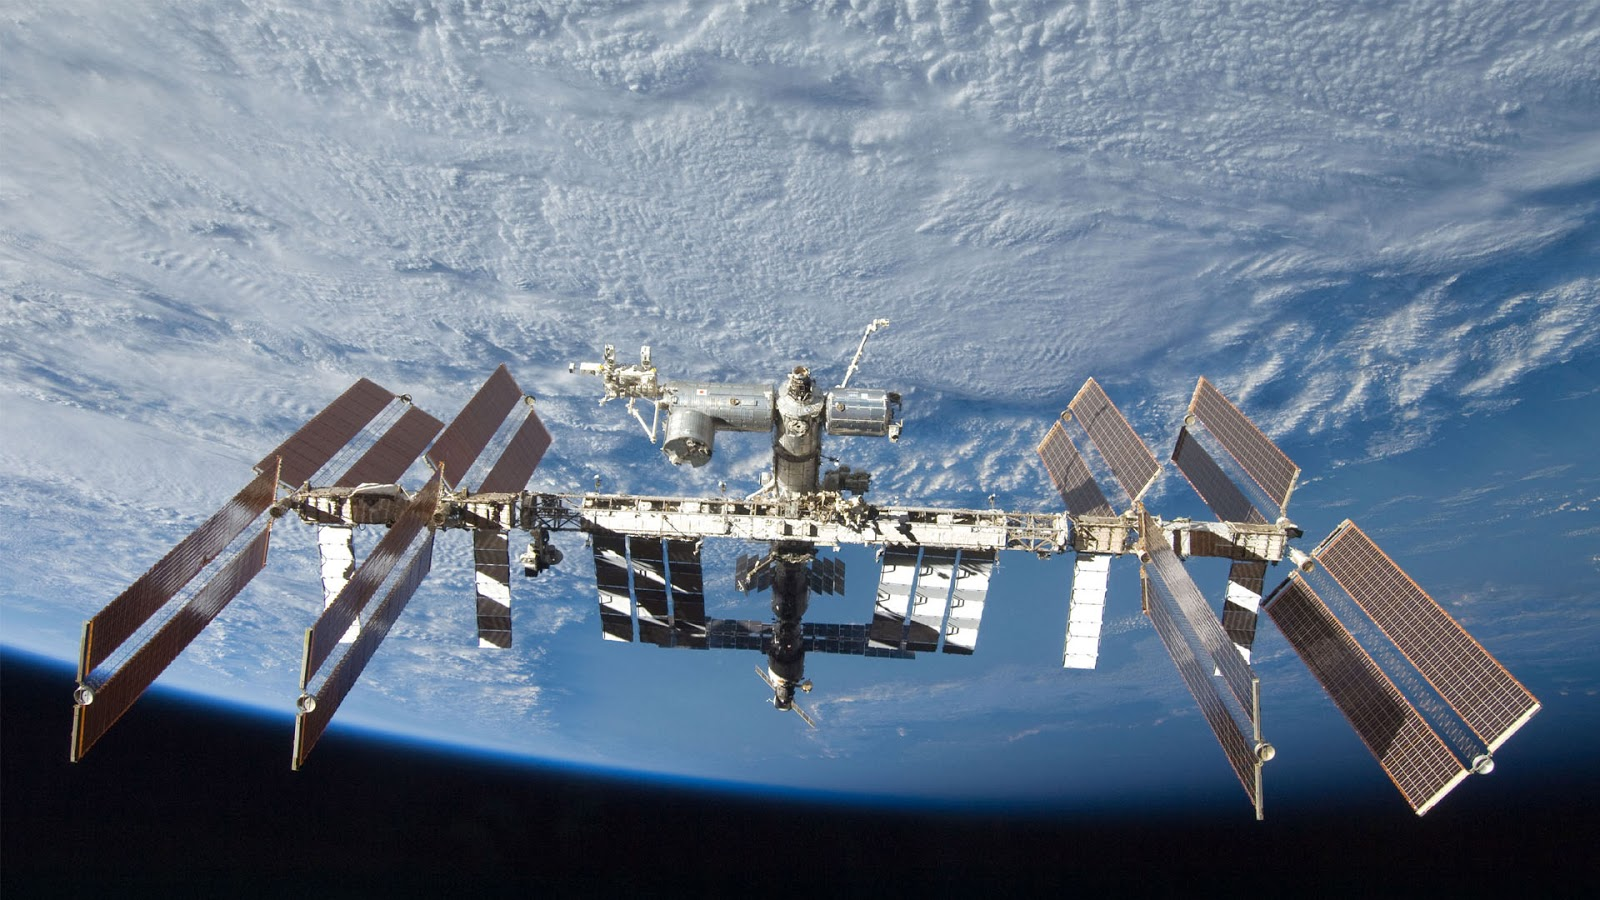 32 space station hd - photo #29